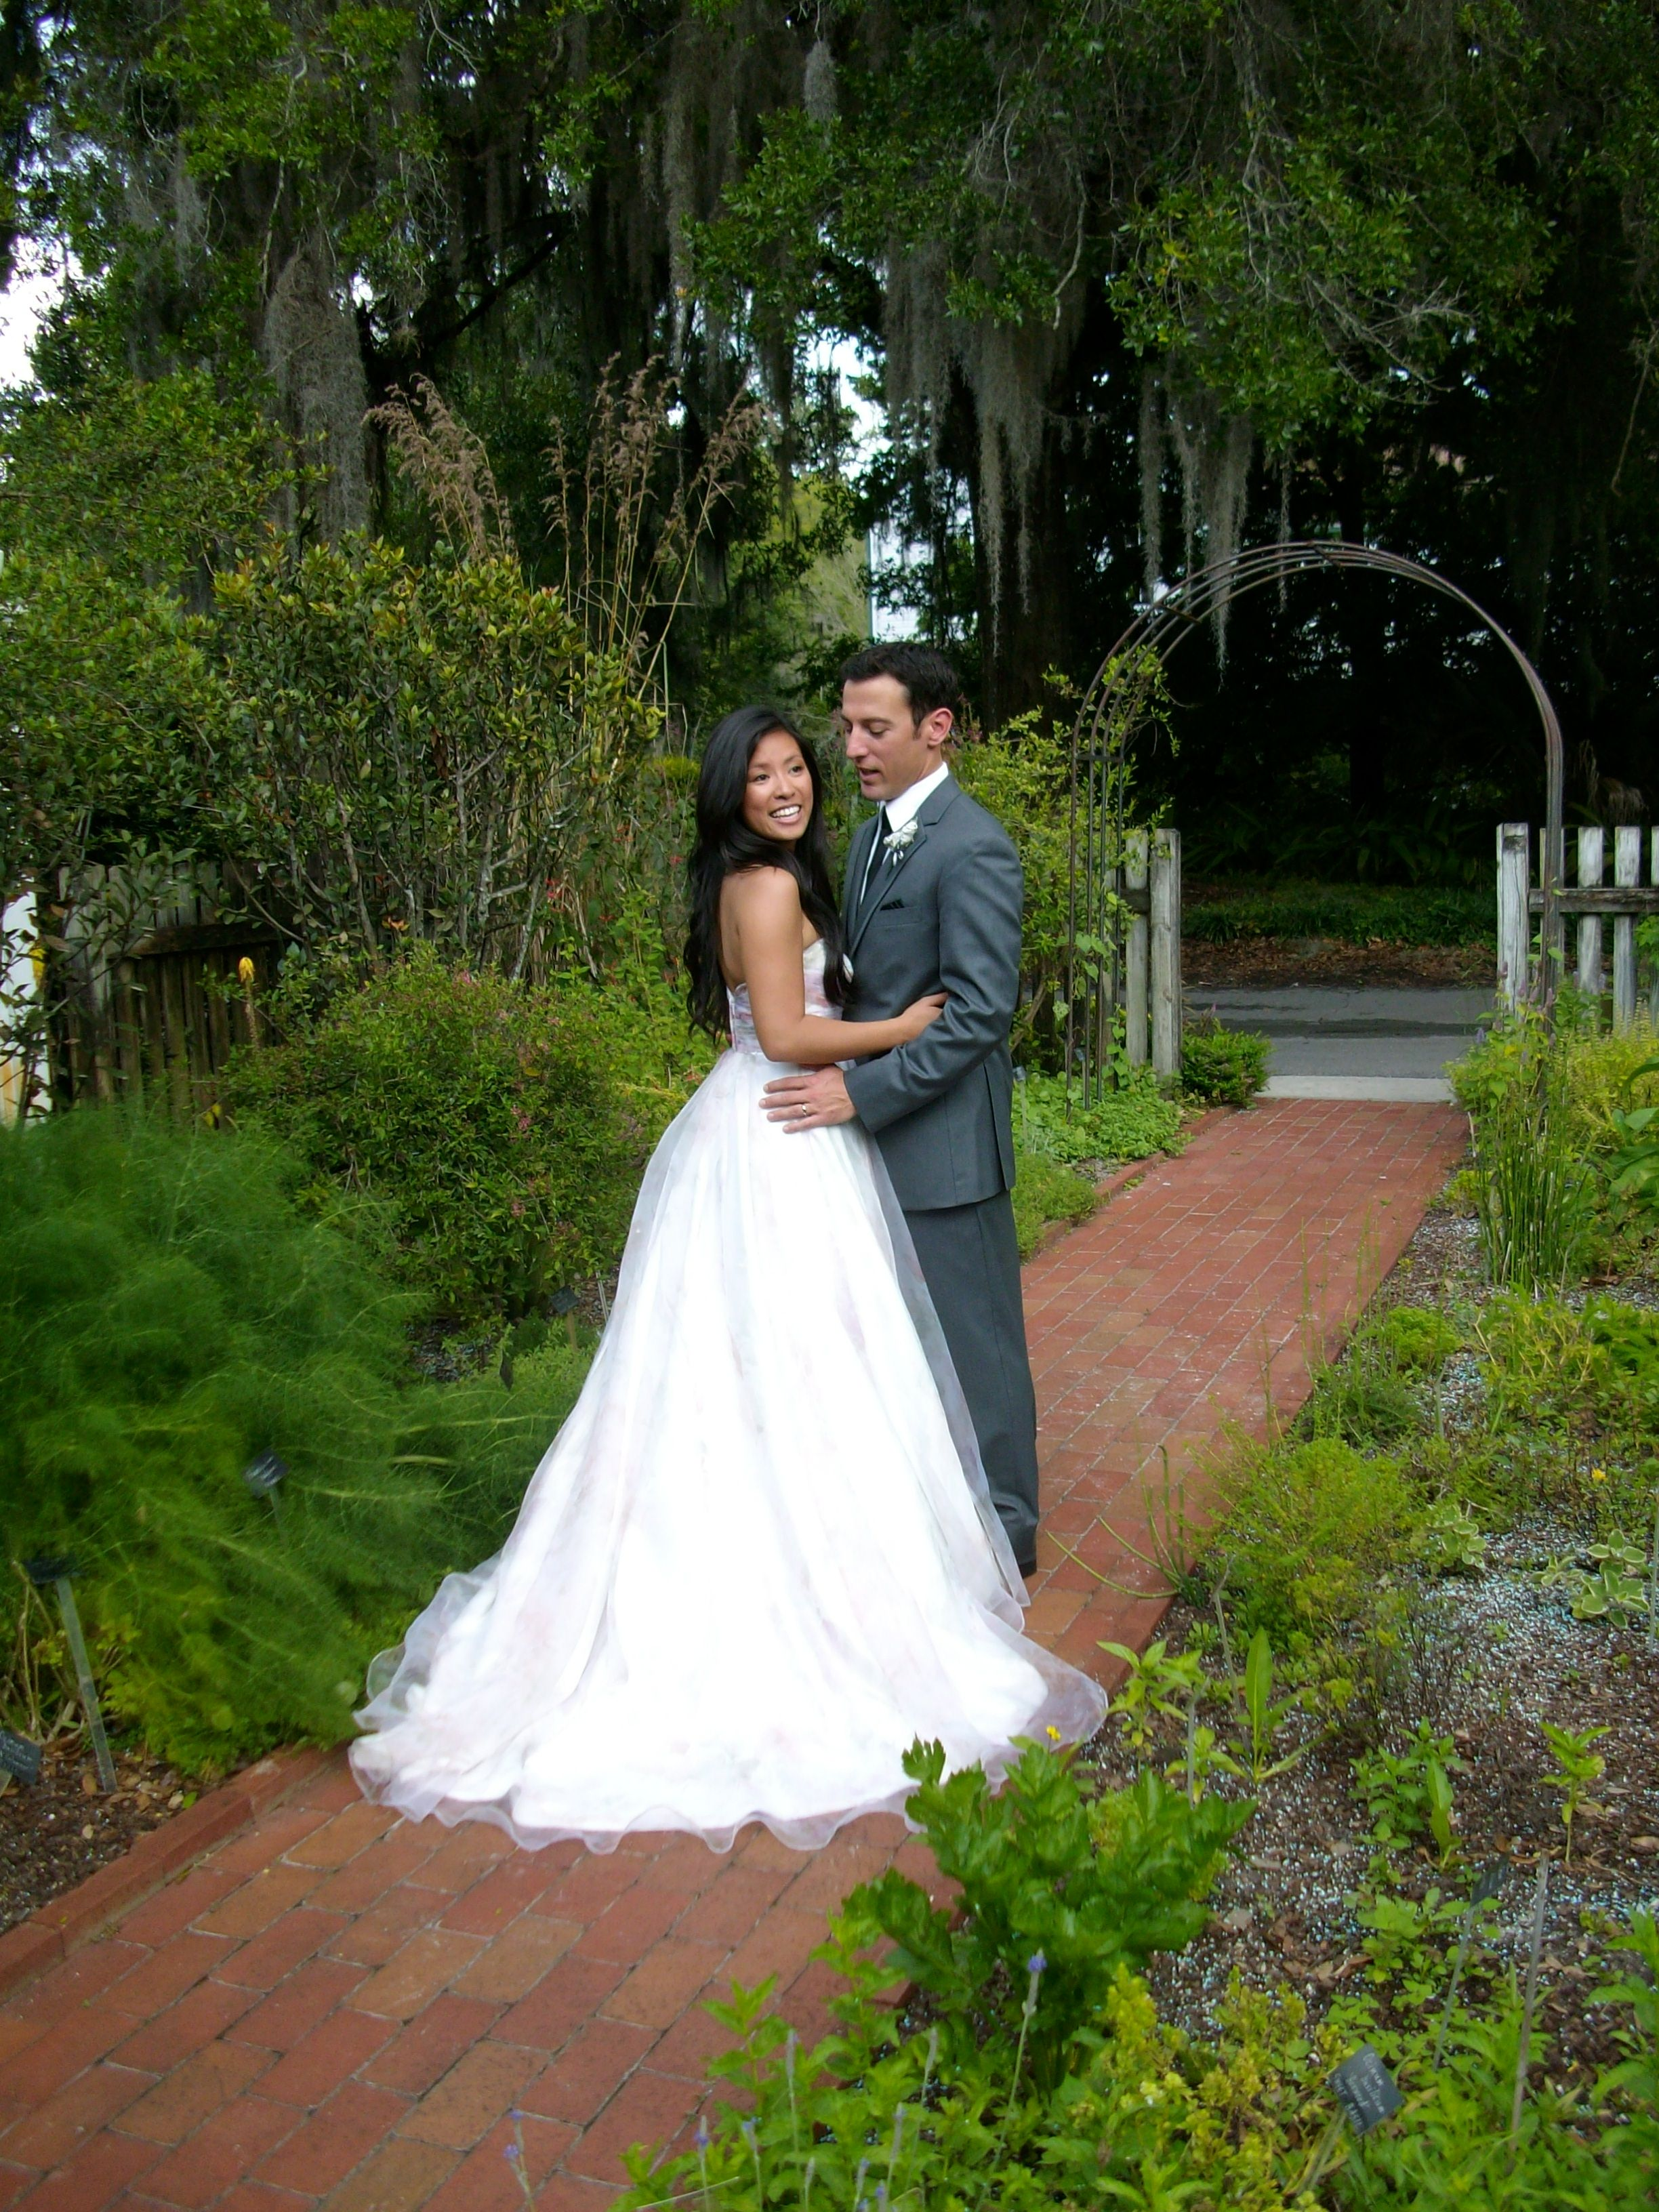 Bride And Groom At Leu Gardens Orlando Fl After The